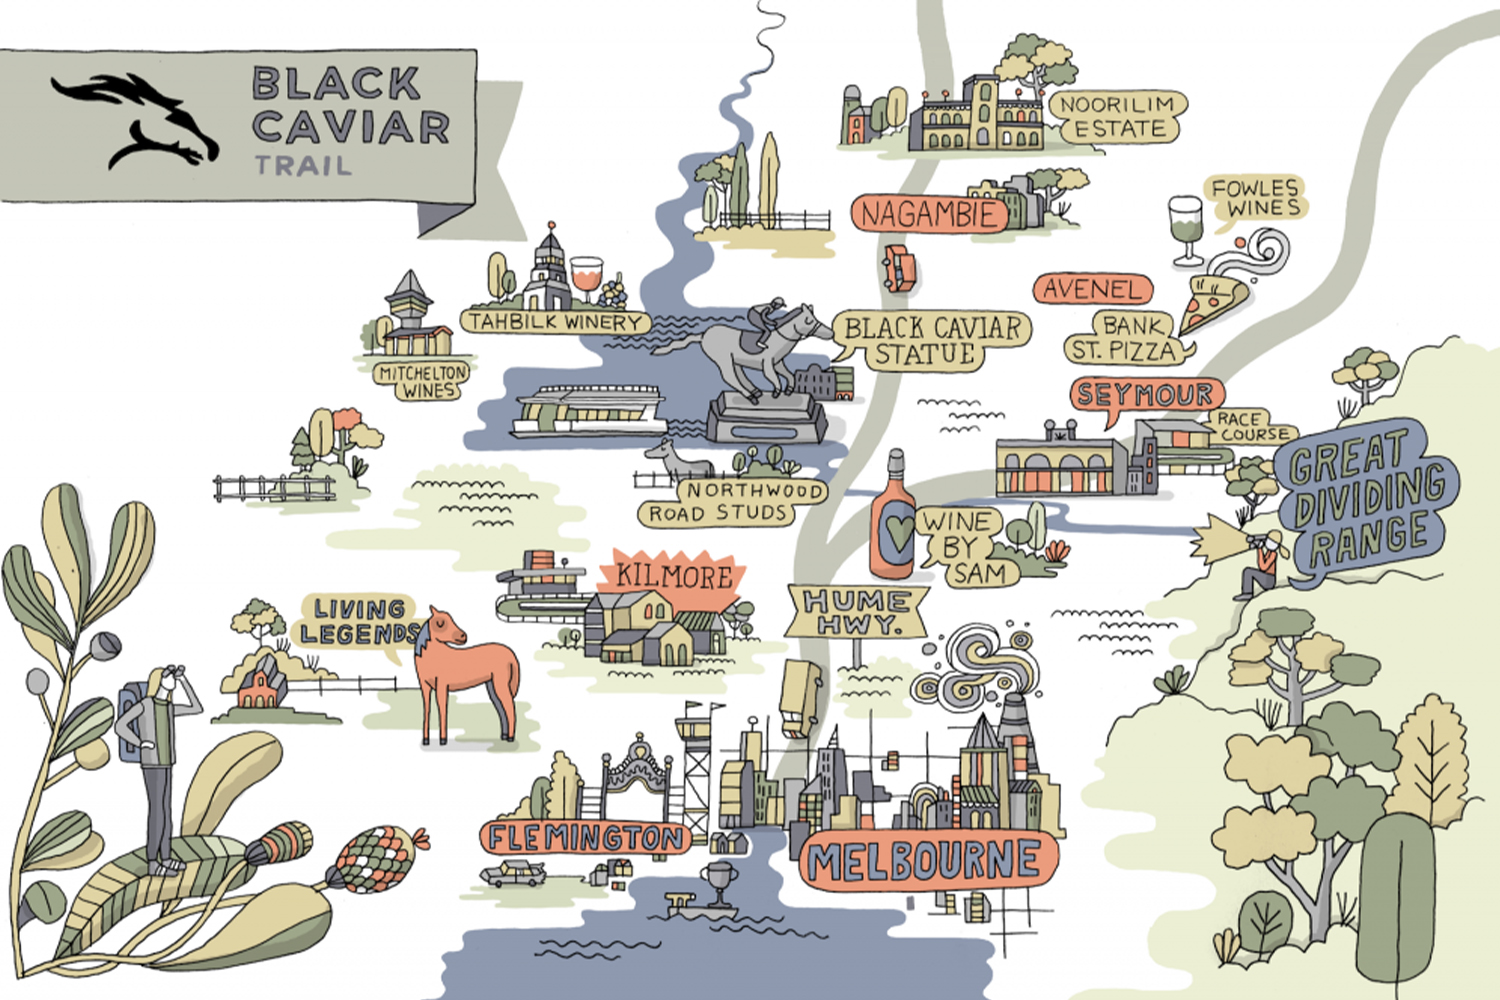 Follow the Black Caviar trail